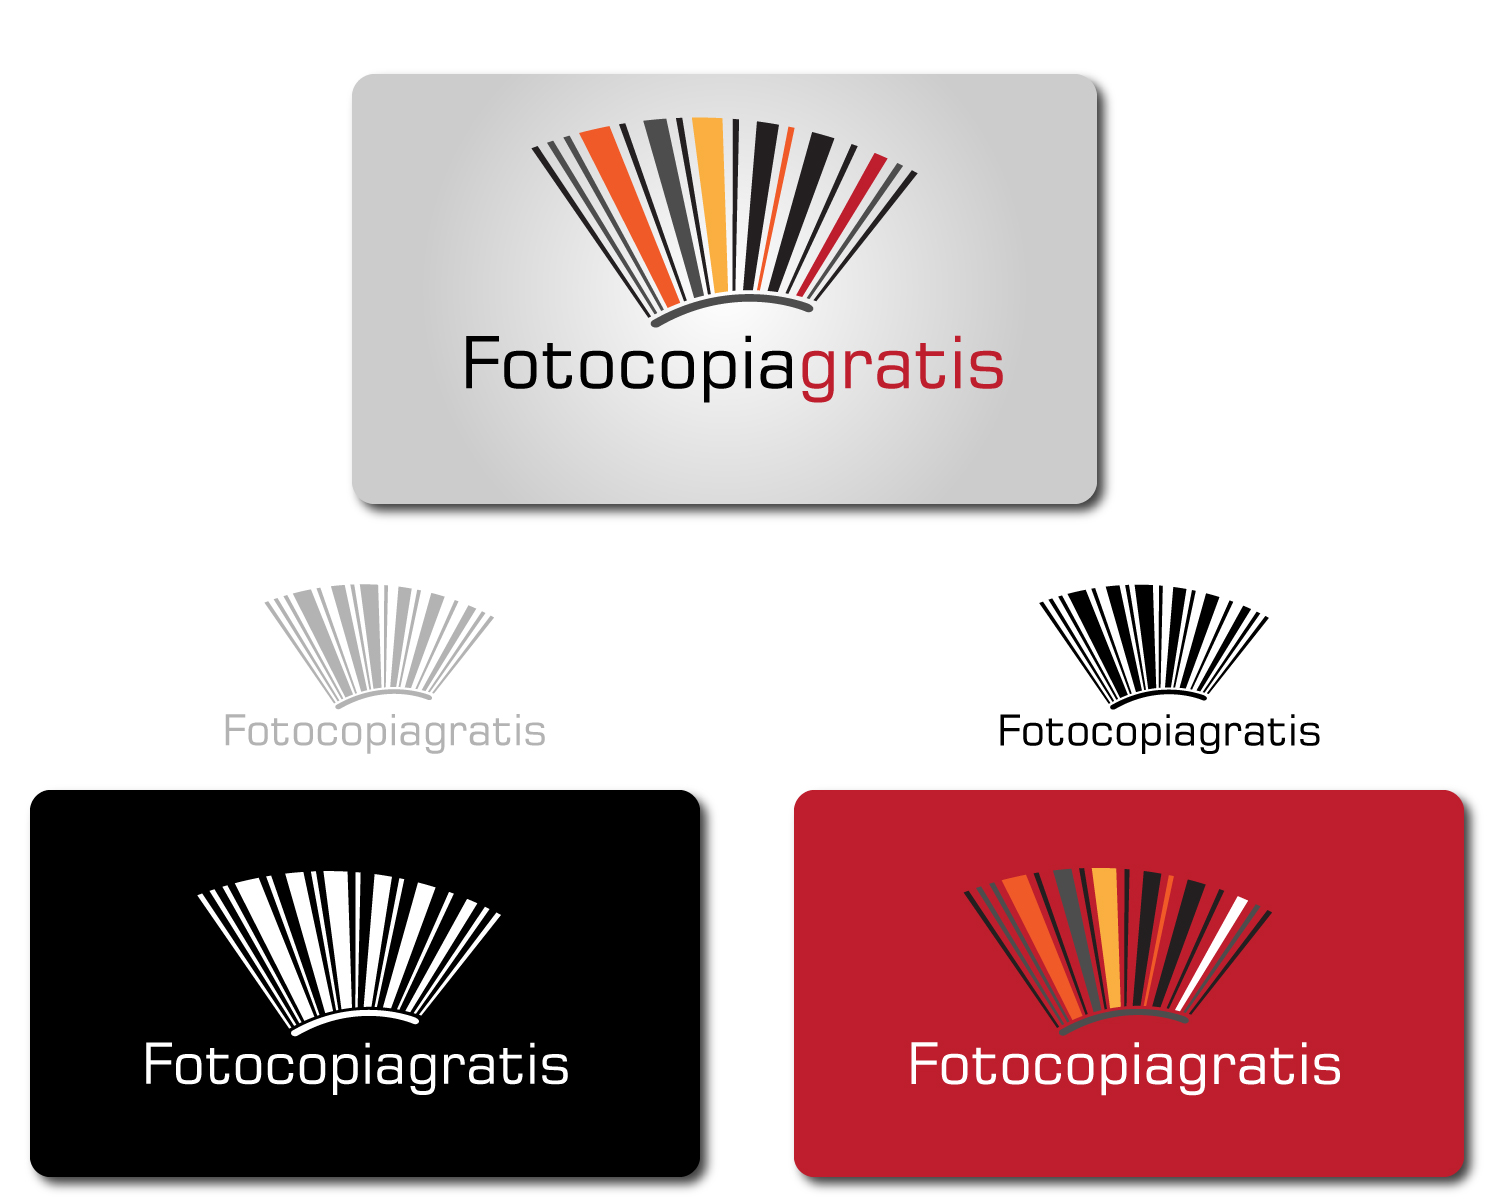 Logo Design by Jagdeep Singh - Entry No. 42 in the Logo Design Contest Inspiring Logo Design for Fotocopiagratis.